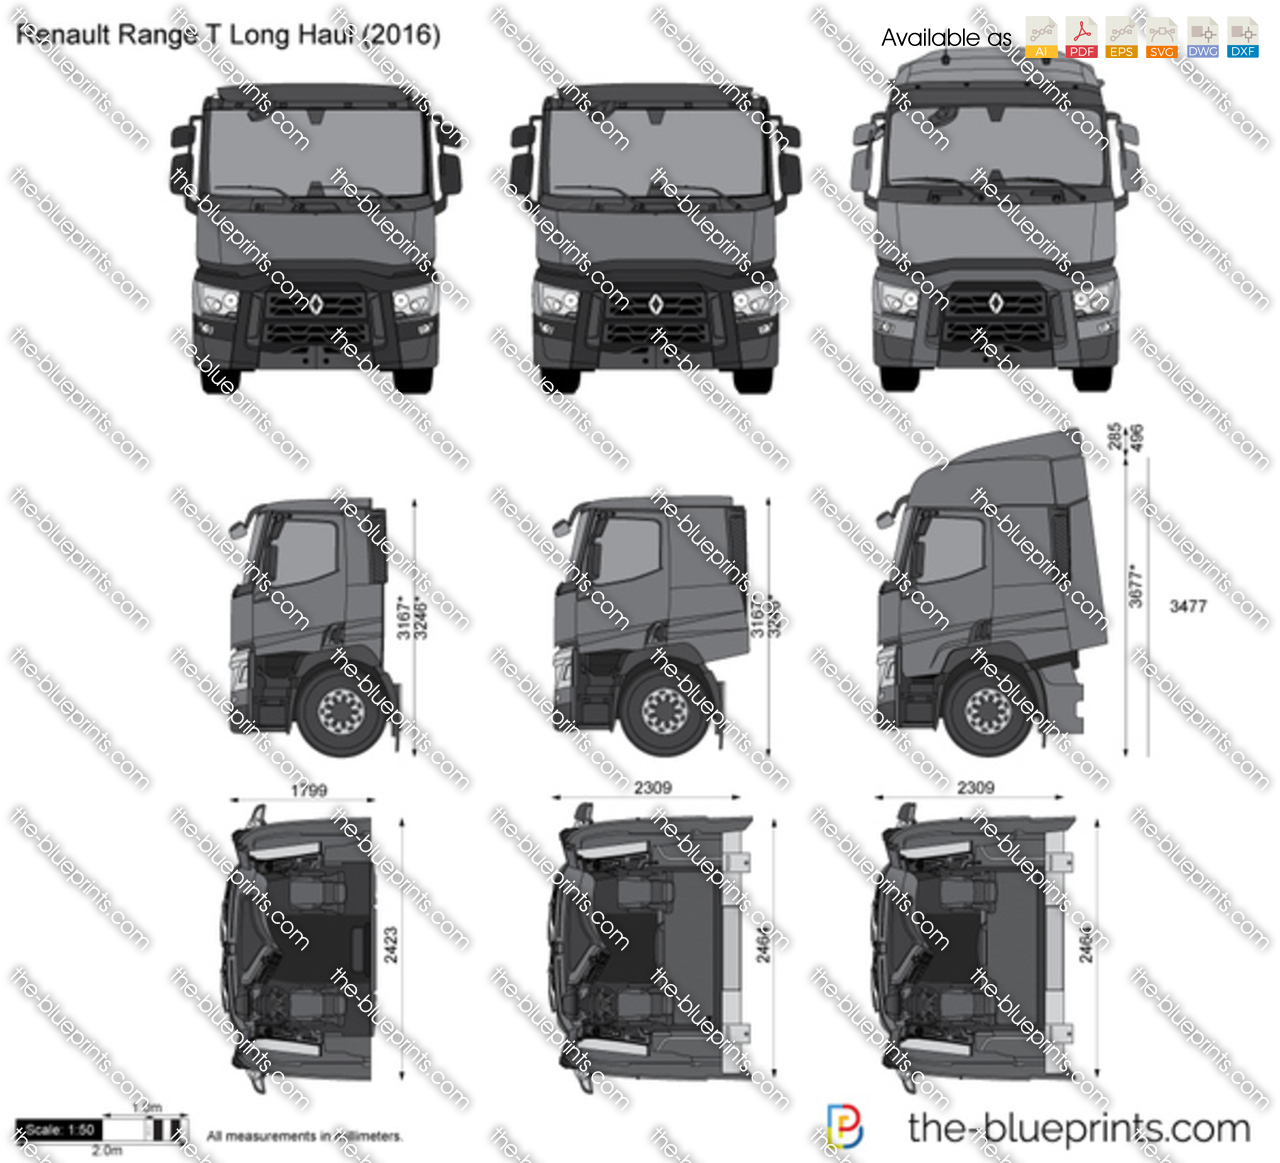 Renault Range T Long Haul Vector Drawing